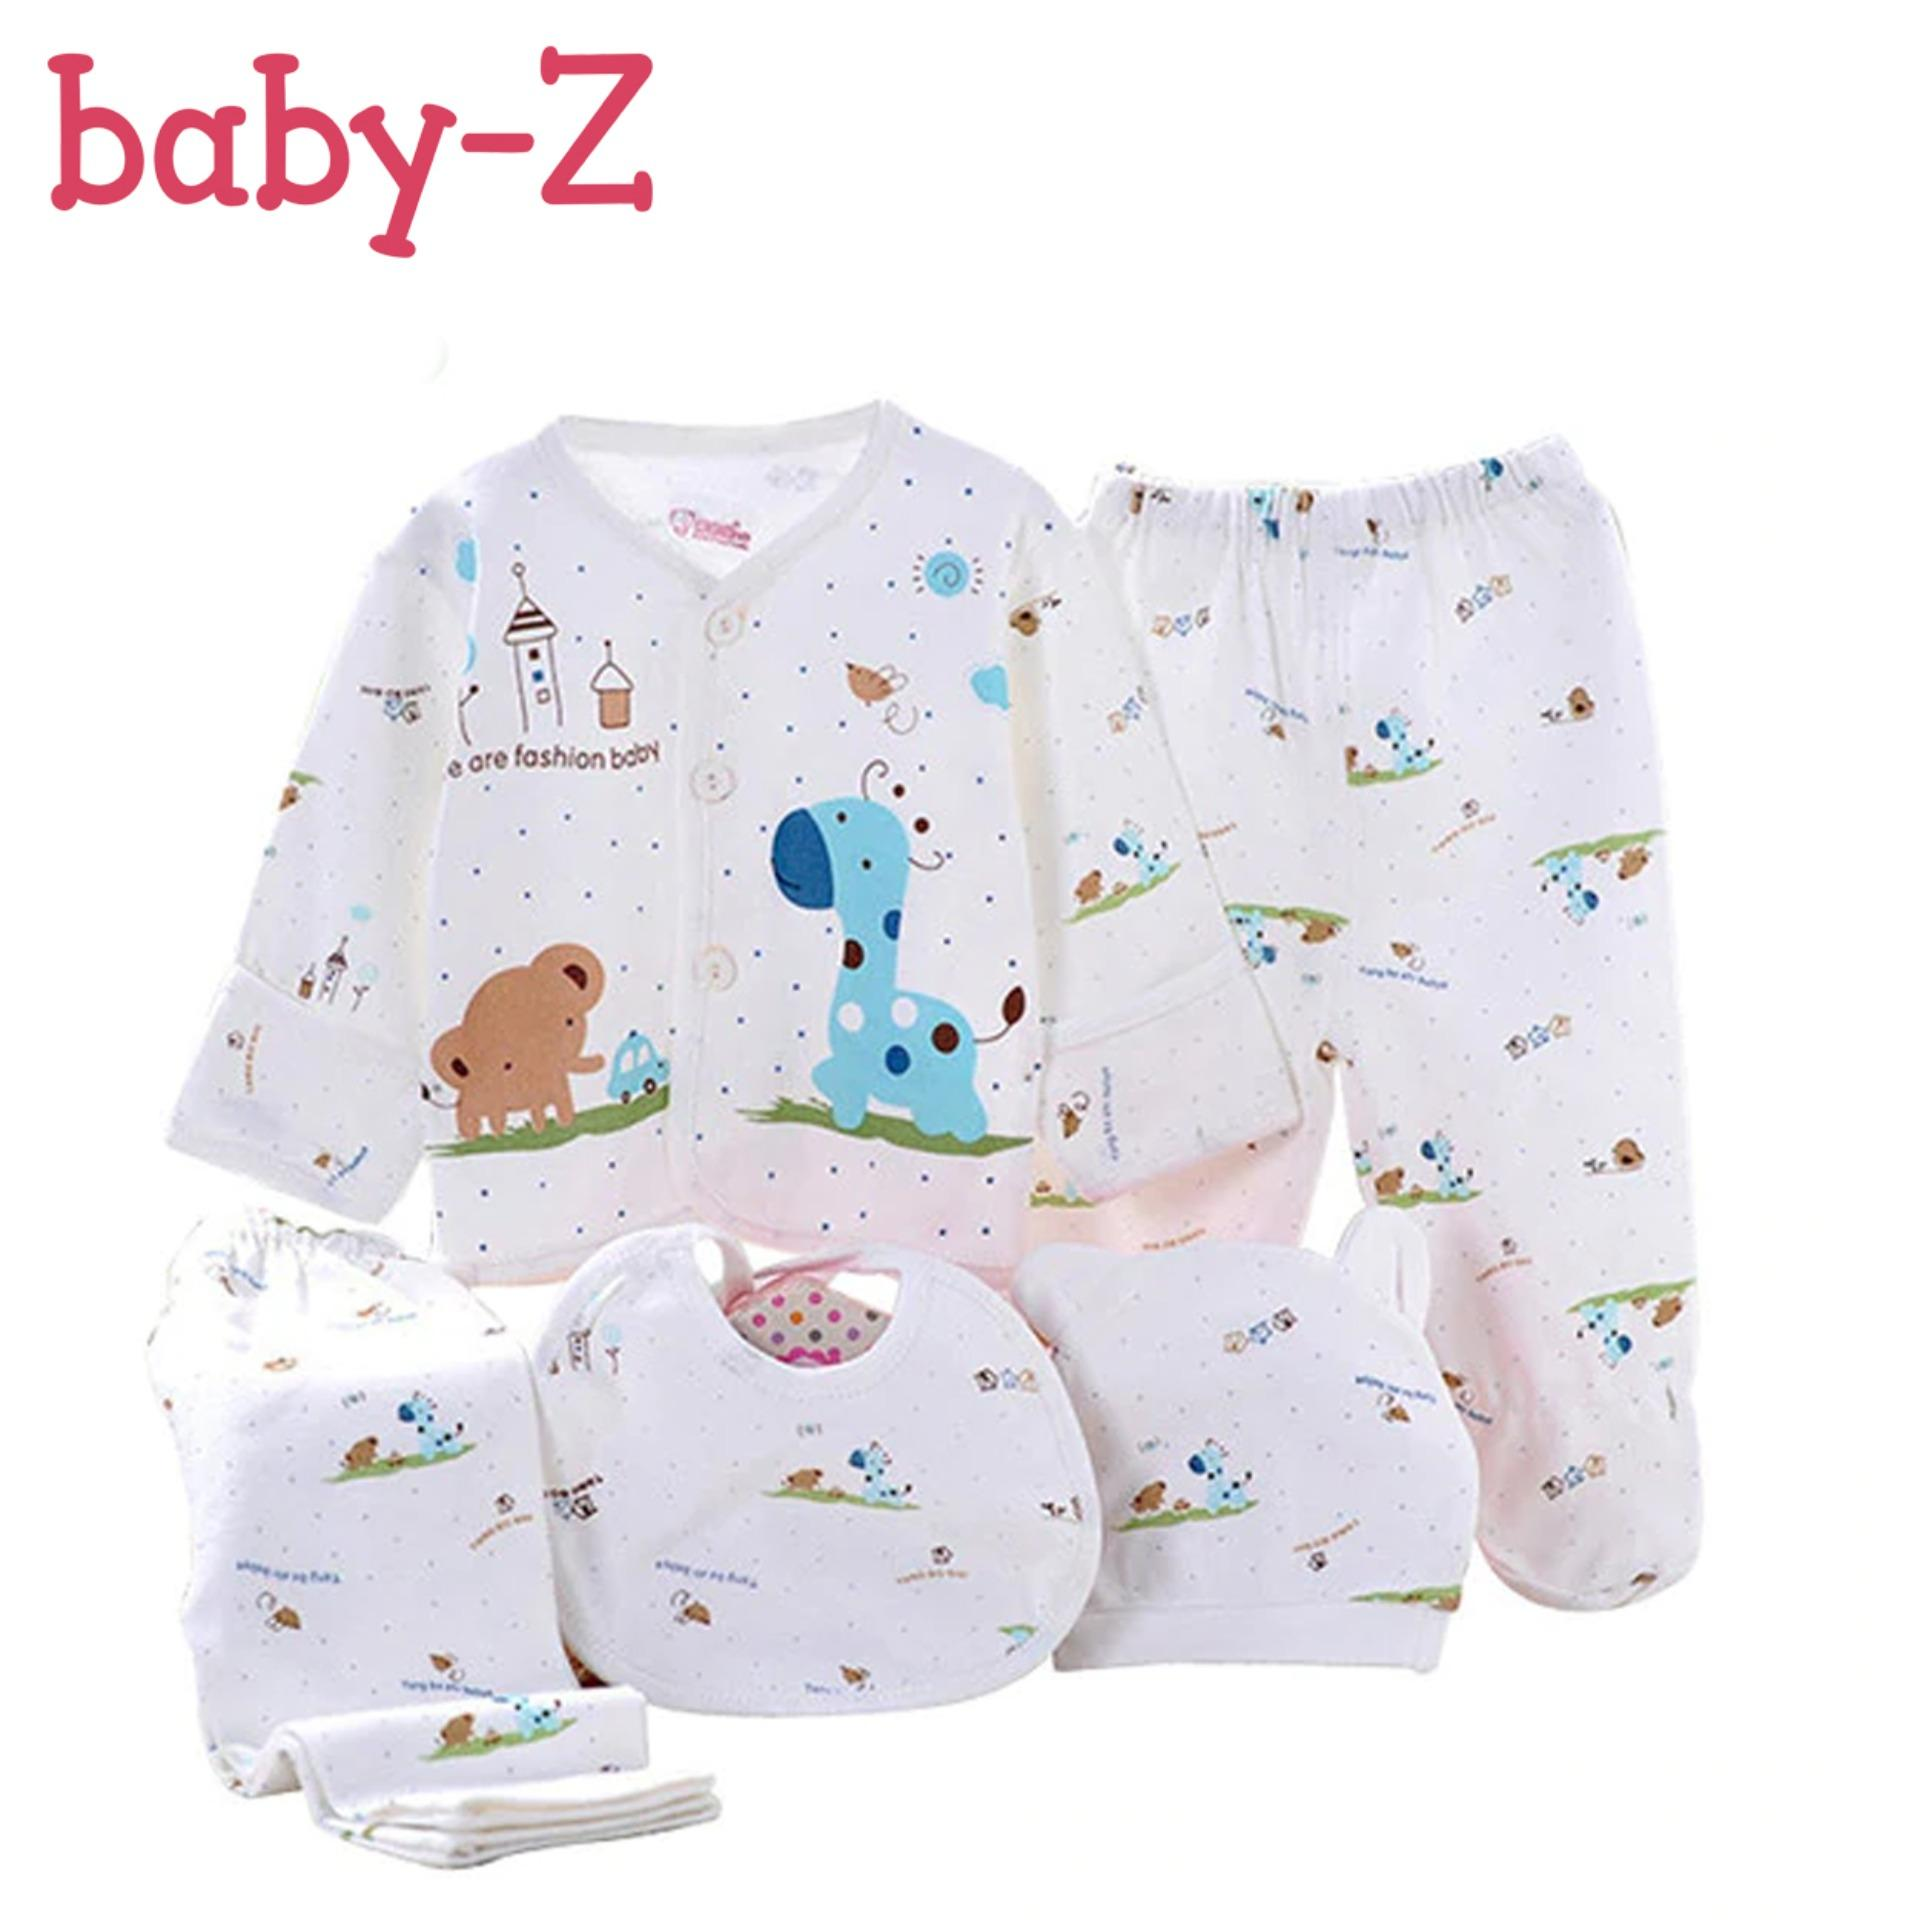 24c5c6176f9 Baby-Z 5pcs Newborn Babies Cotton Underwear Cap Bib Long Sleeve Animal  Print (Blue